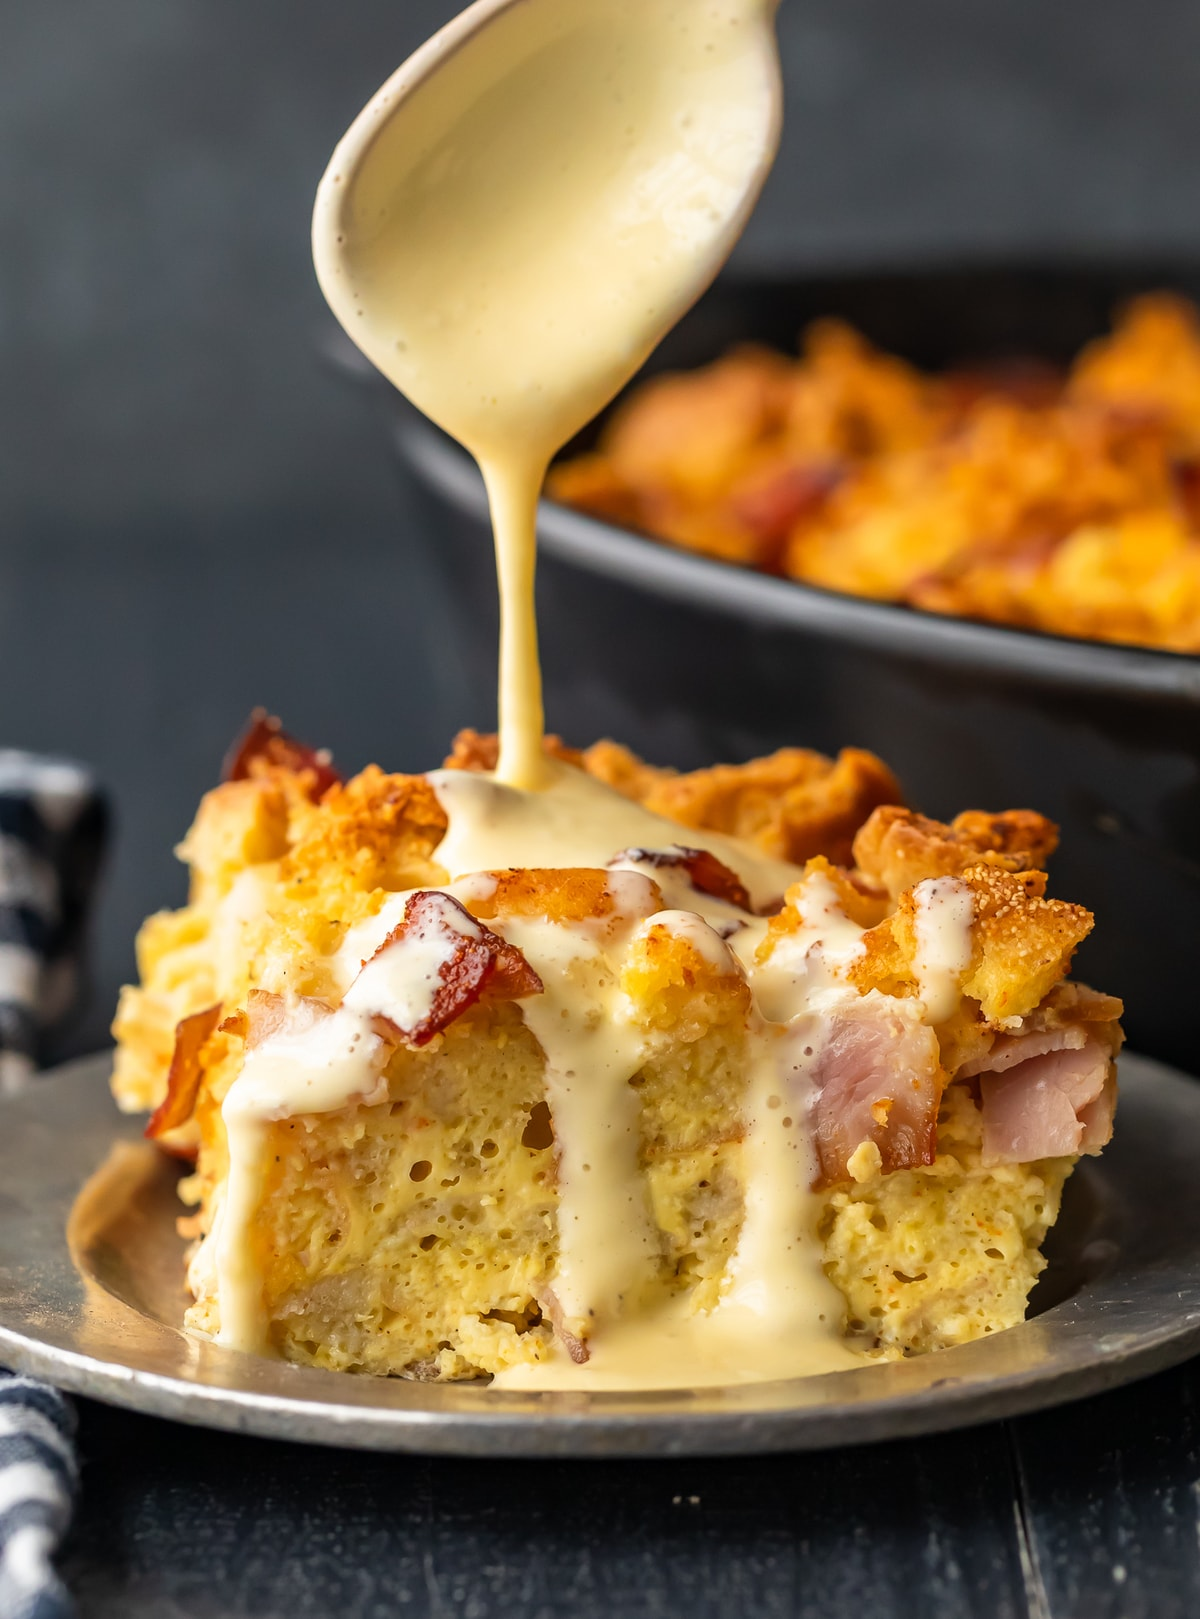 eggs benedict casserole topped with hollandaise sauce